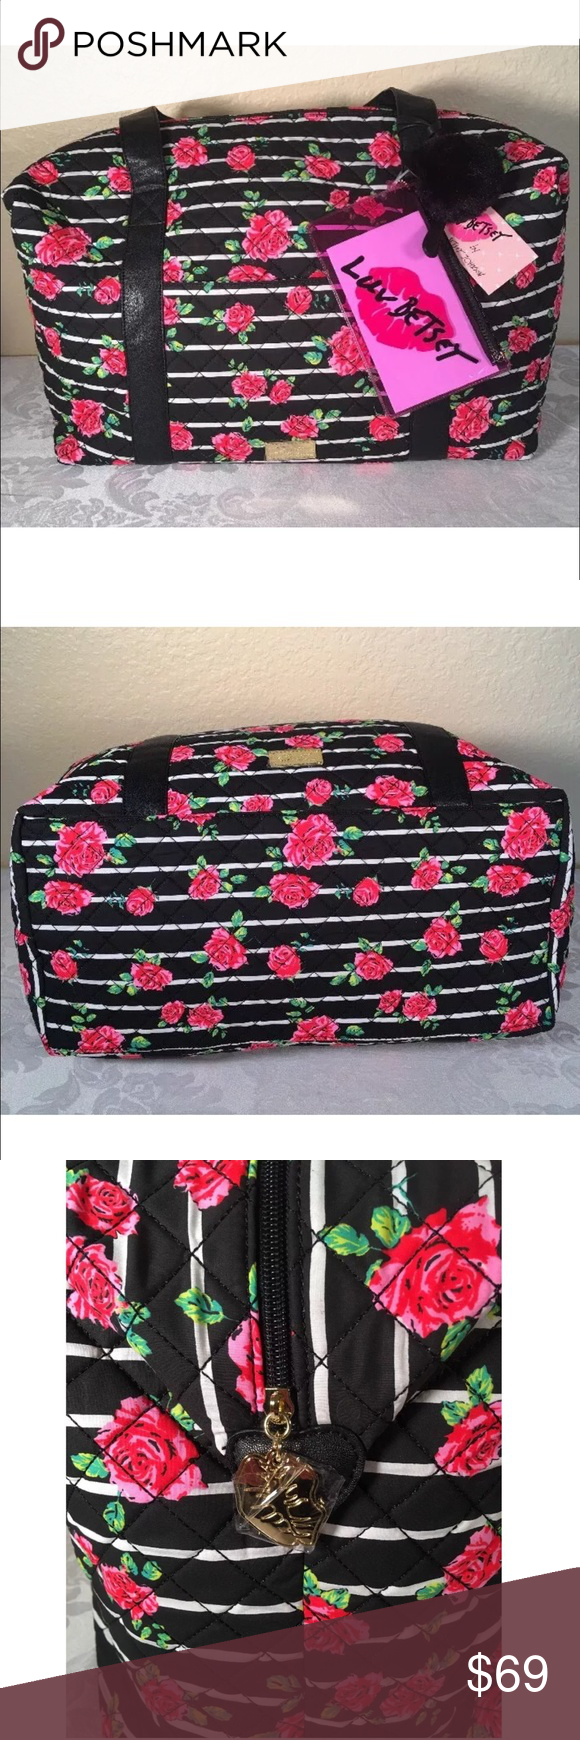 """Betsey Rose weekender large bag travel tote stripe Betsey Johnson Rose floral stripe weekender large travel bag tote  quilted with black faux leather handles  extra pouch , inside has zippered pocket plus pockets for pens and phone  12x18x9"""" great for a getaway ! Betsey Johnson Bags Travel Bags"""